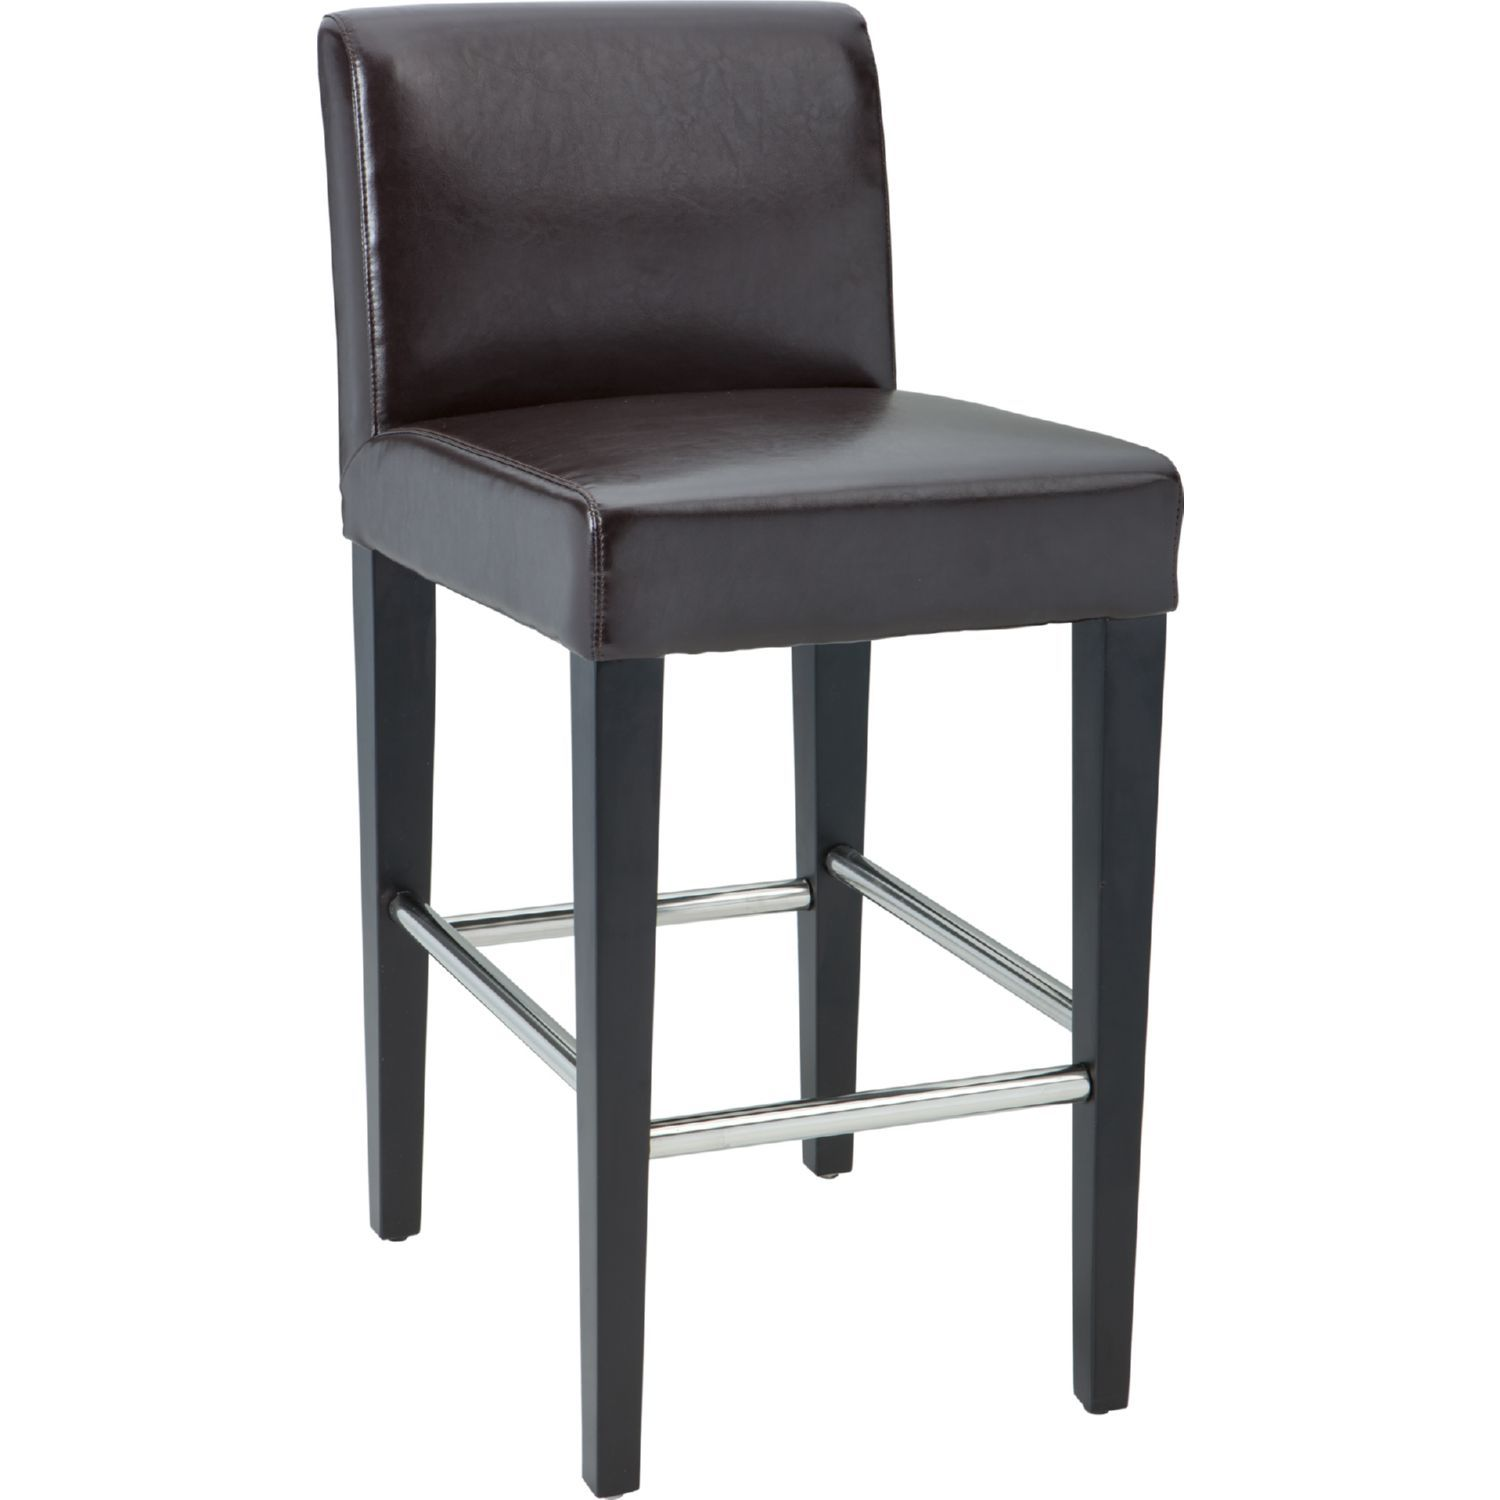 Sunpan Oriana Counter Height Stool Brown Leather Leather Counter